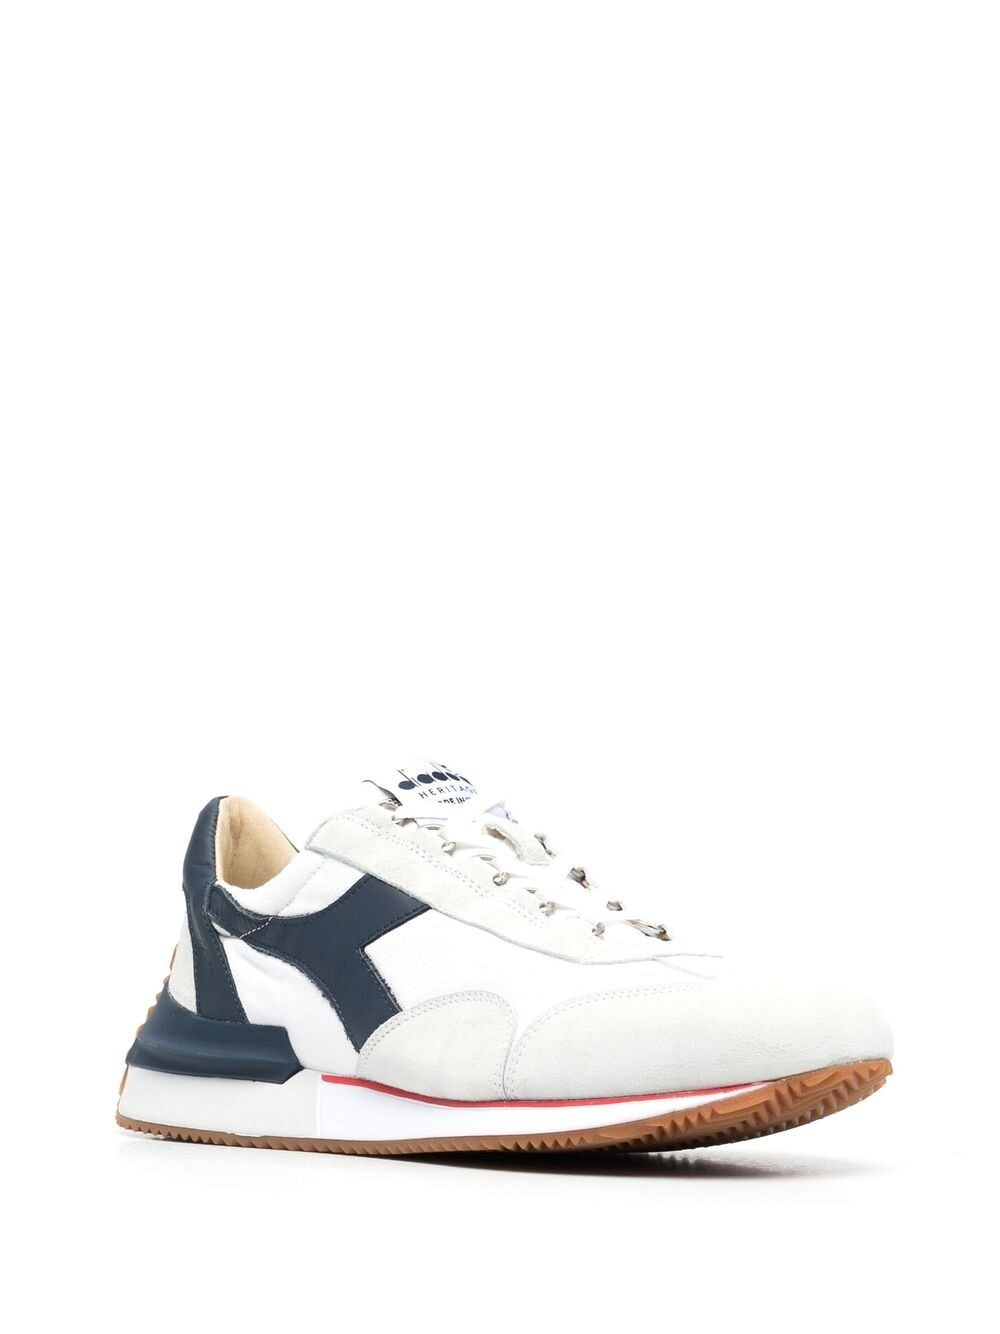 Diadora equipe mad sneakers man white DIADORA | Sneakers | 201.177158C4656